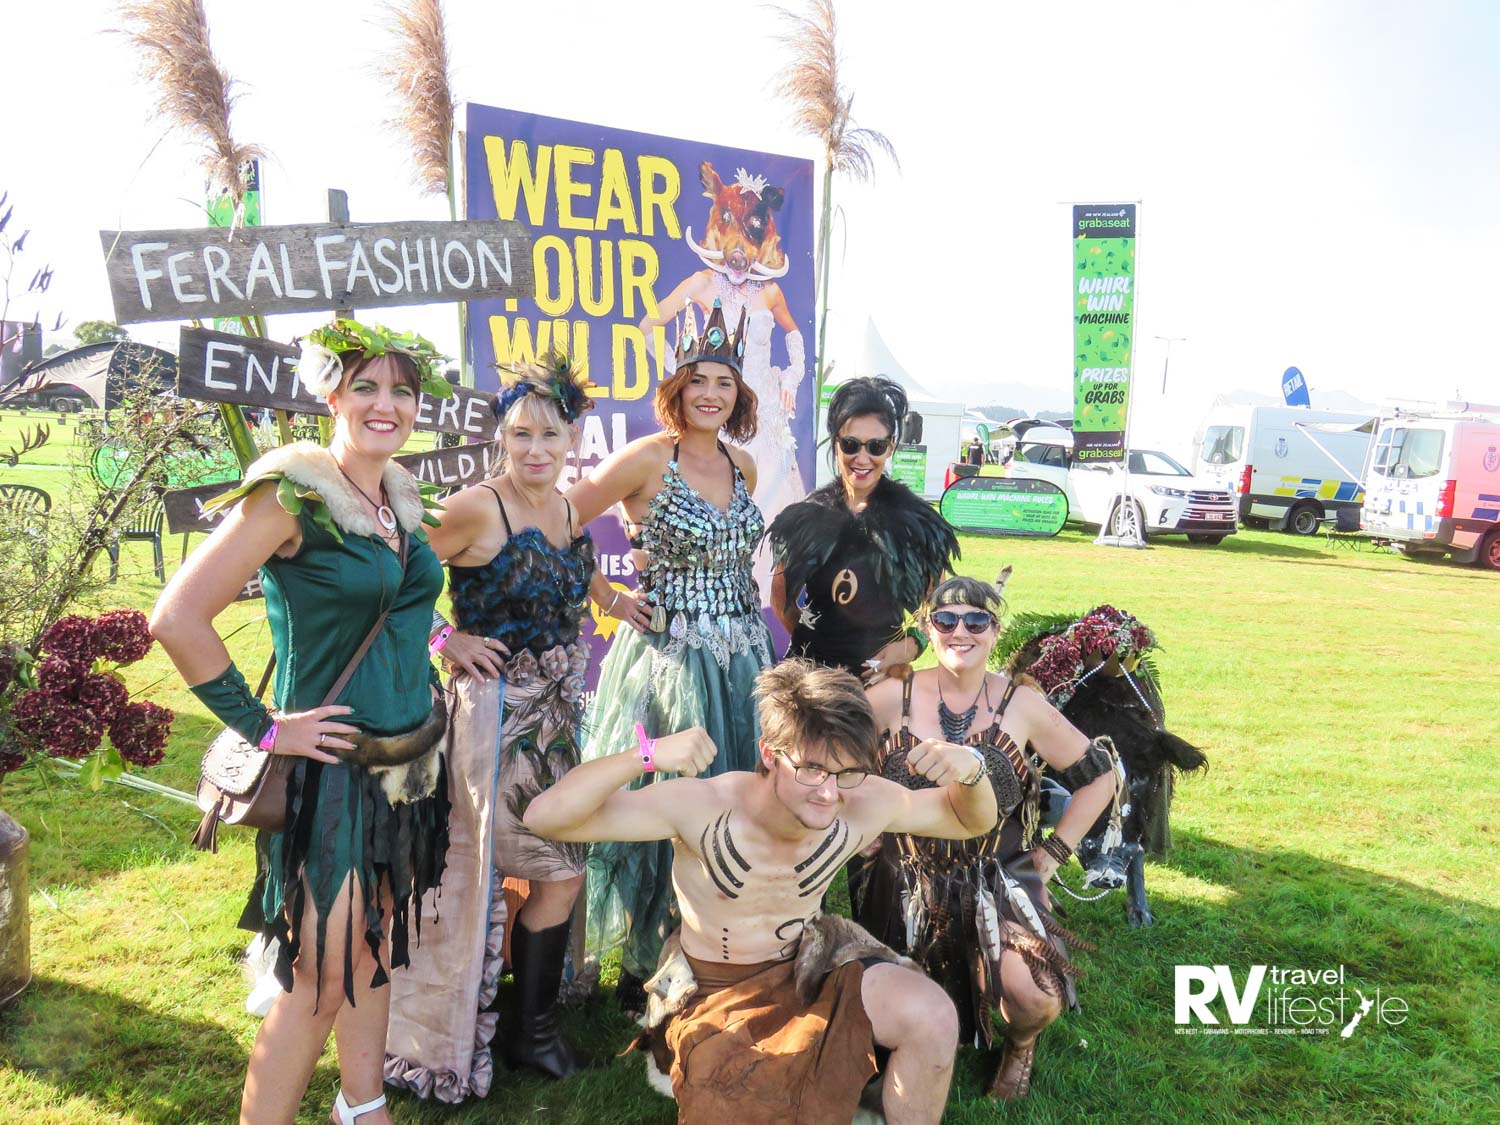 The feral fashion team from left Naomi Eyre, Tanya Salter-Anderson, Angie Foster (Feral Fashion organiser), Michelle Bradley (Judge) Front – Khan Buckman and Jenneth Oakley